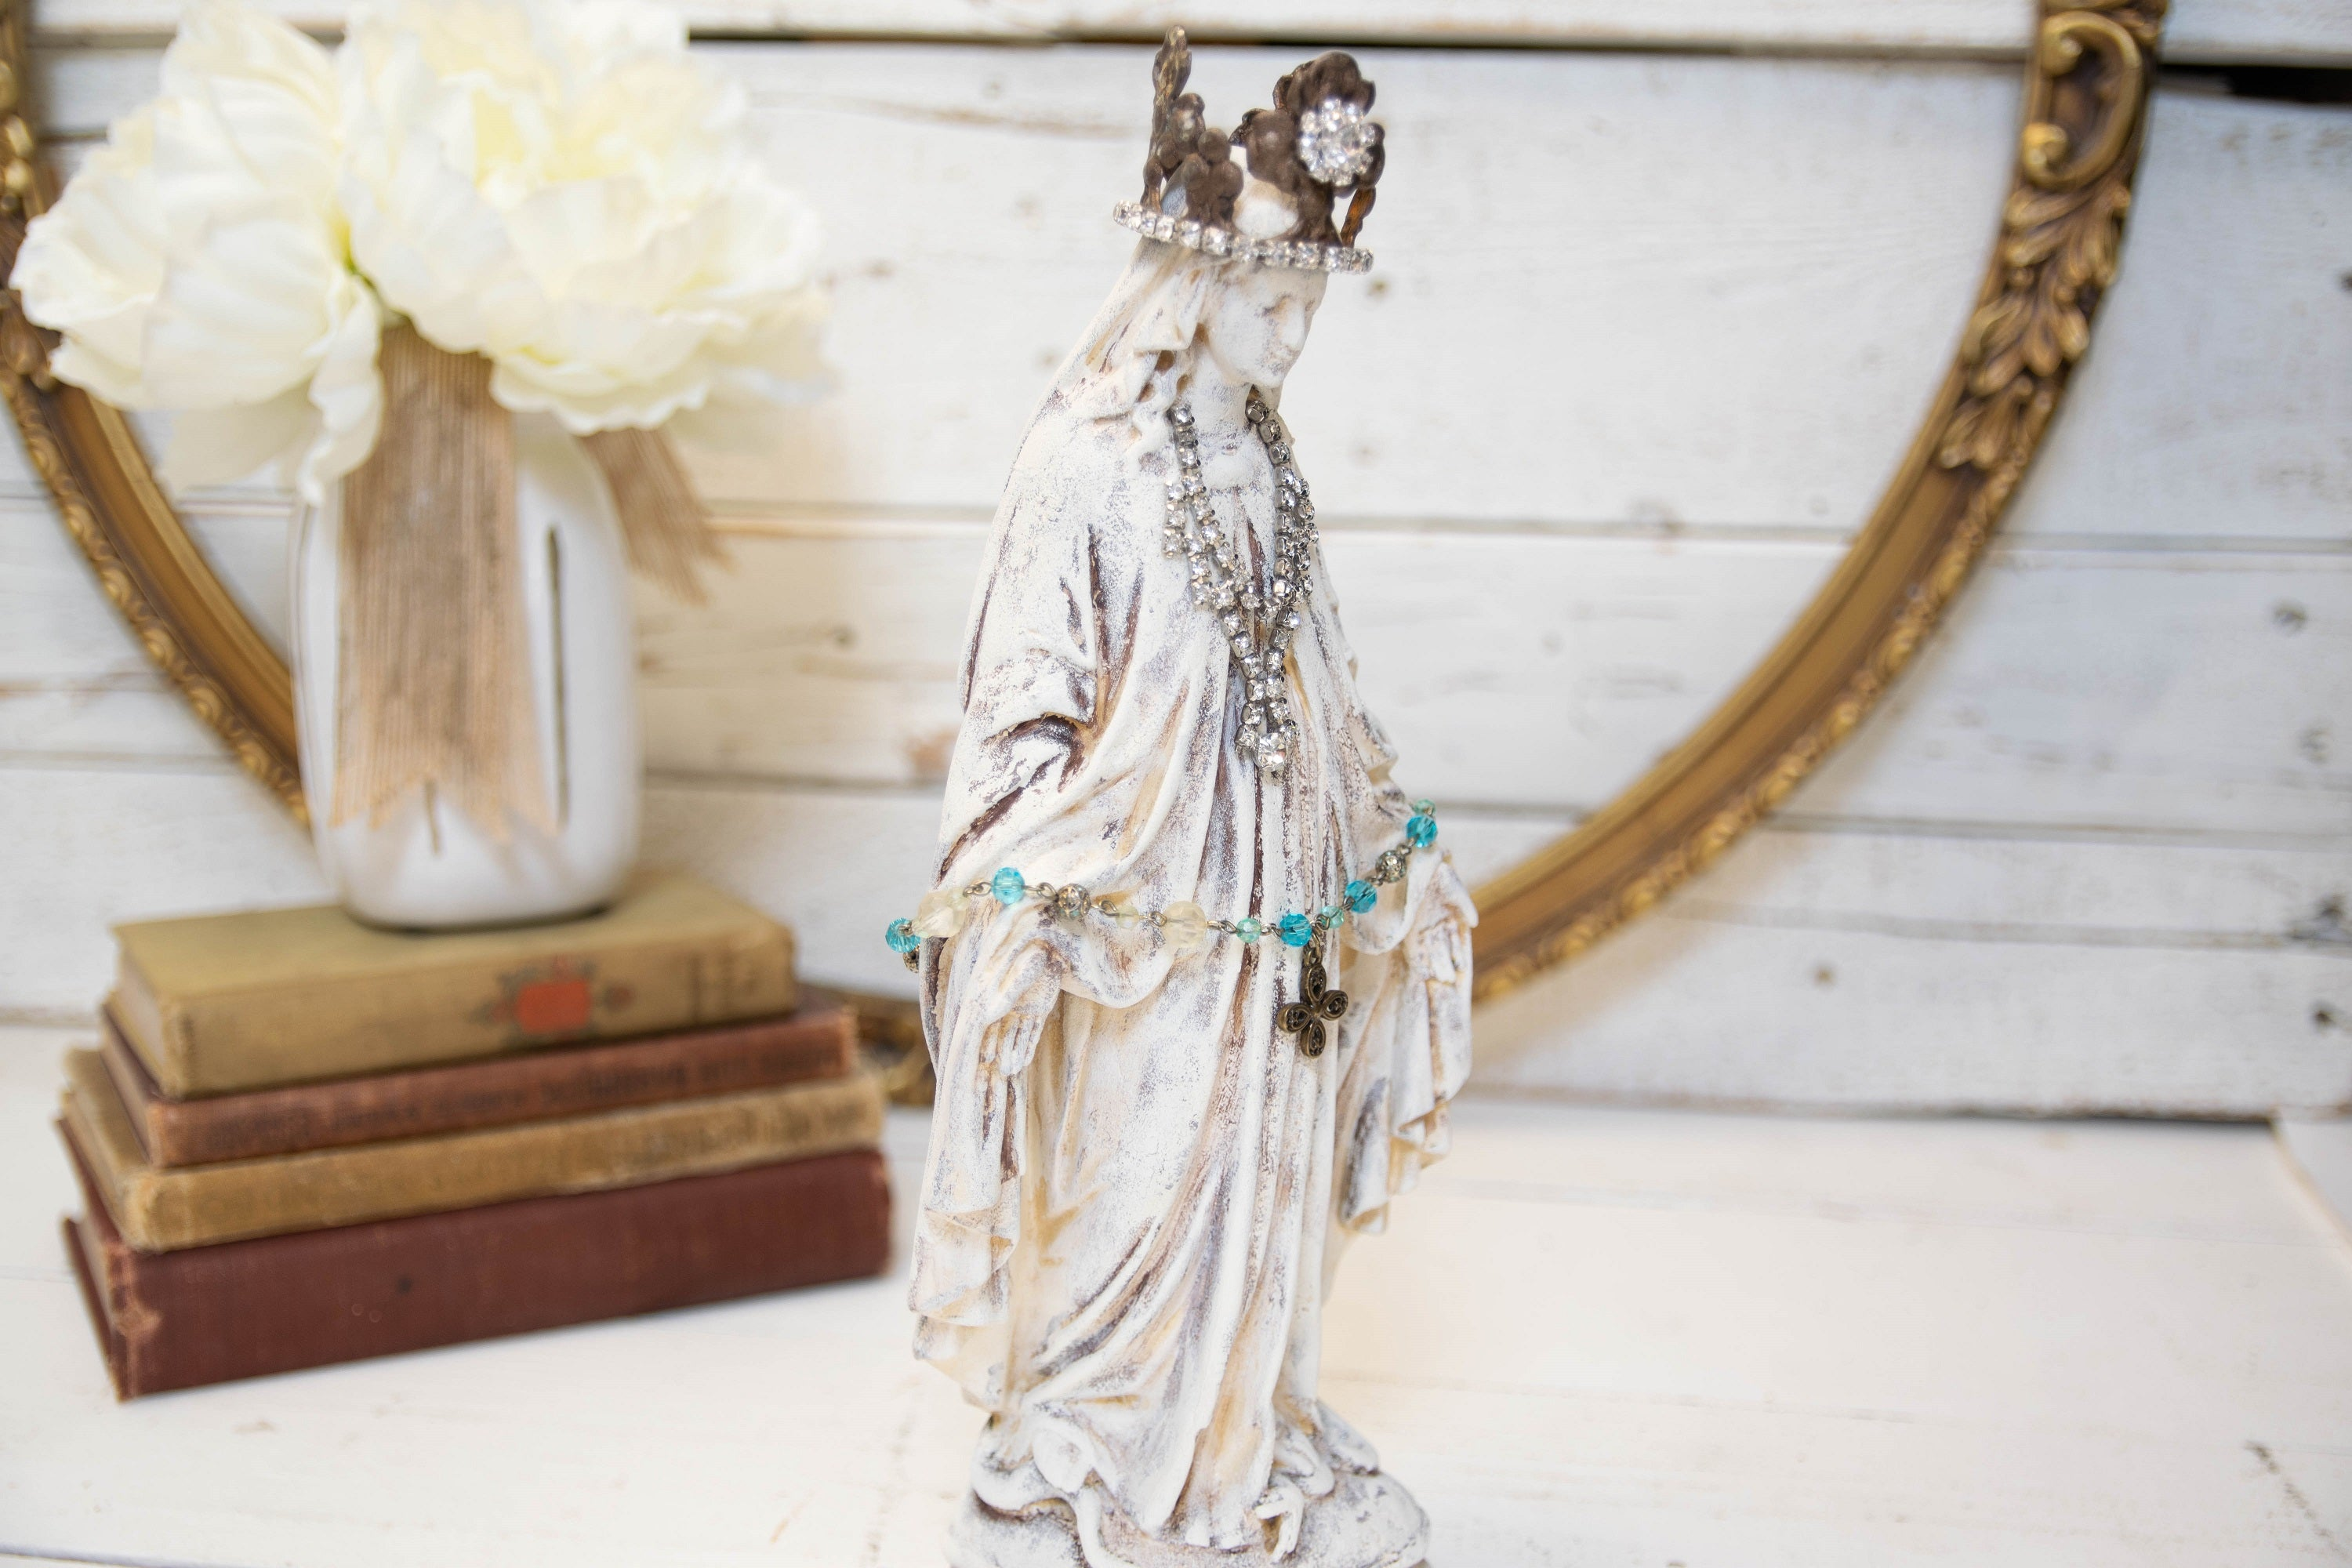 French Nordic Virgin Mary statue